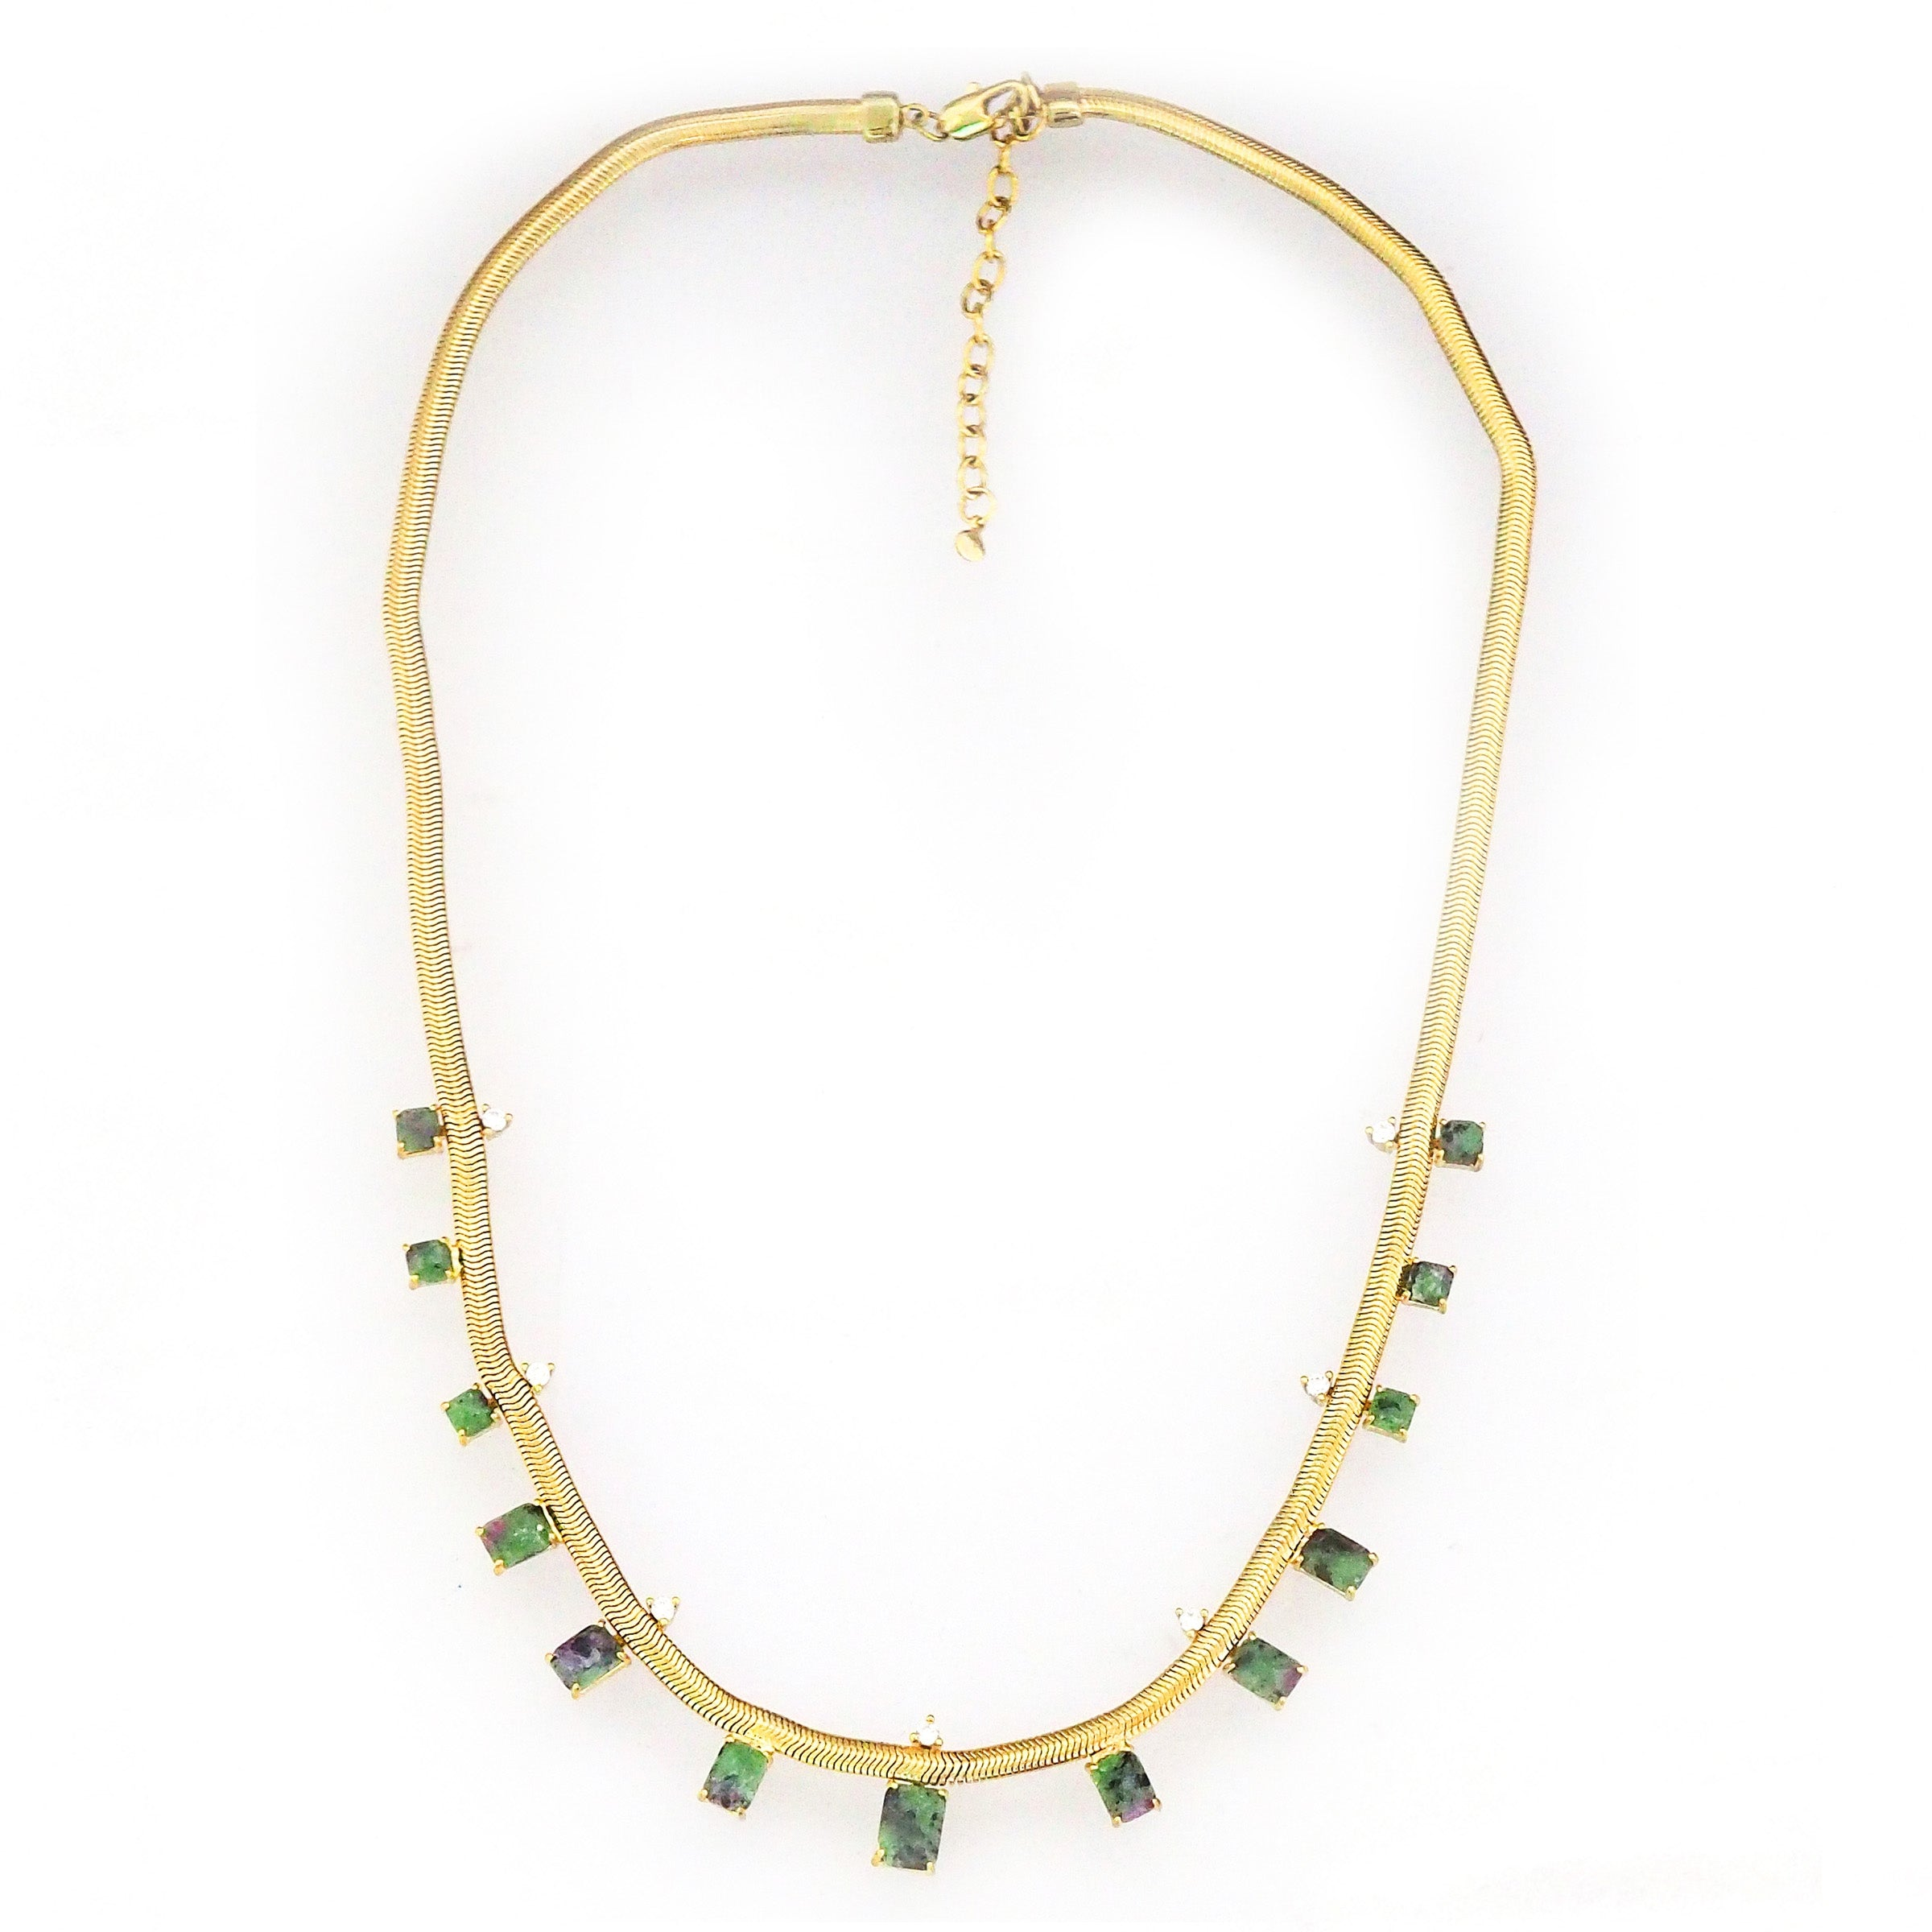 Gold Tone Snake Necklace with Green Glass and Cubic Zirconia